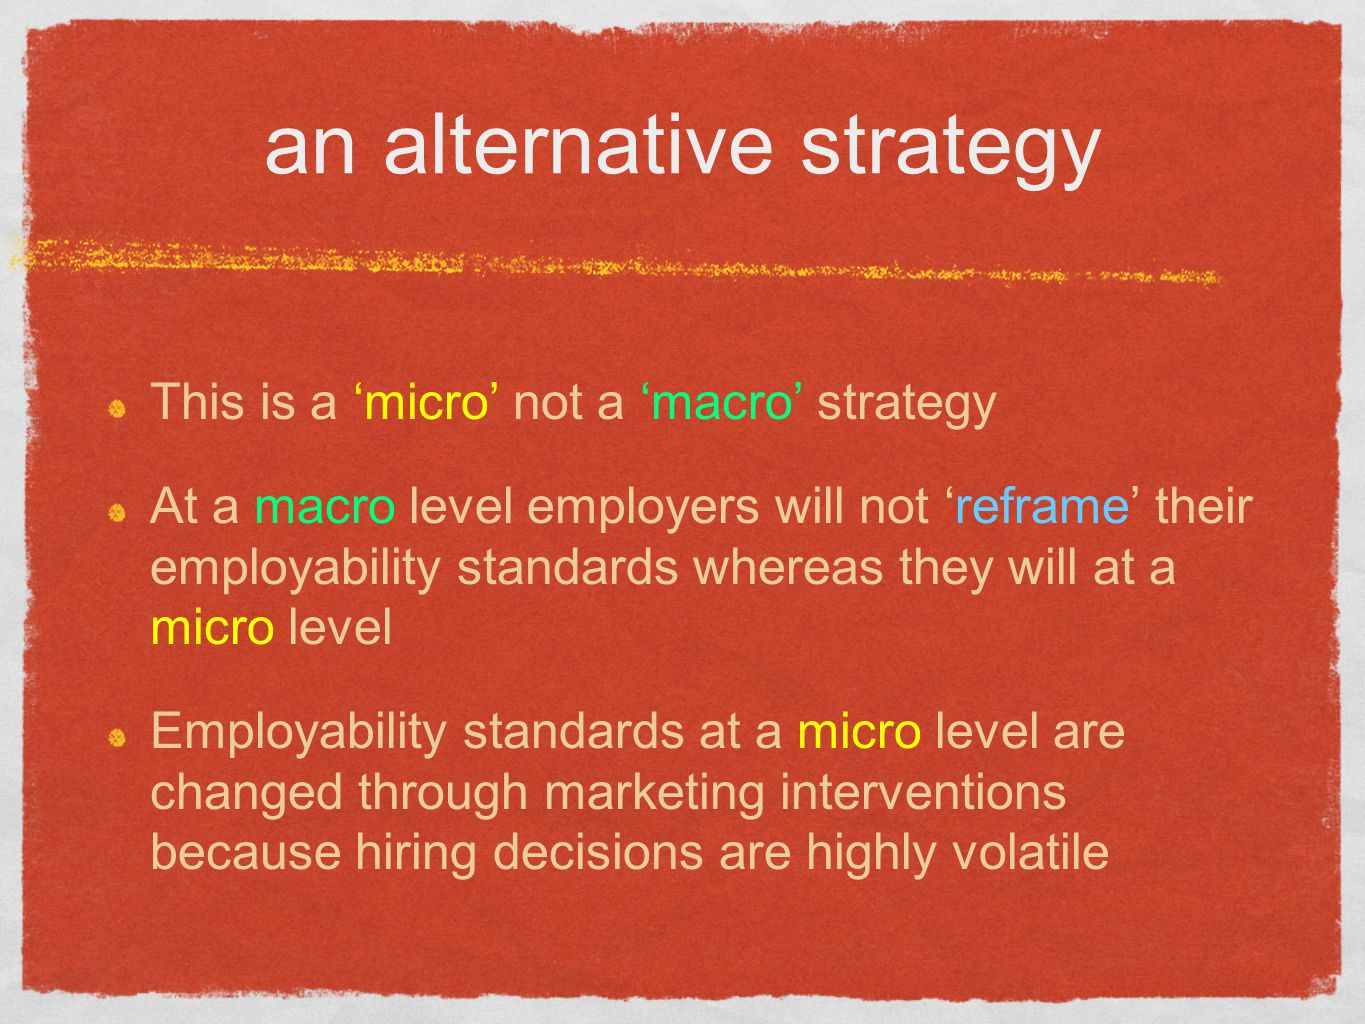 an alternative strategy This is a 'micro' not a 'macro' strategy At a macro level employers will not 'reframe' their employability standards whereas t